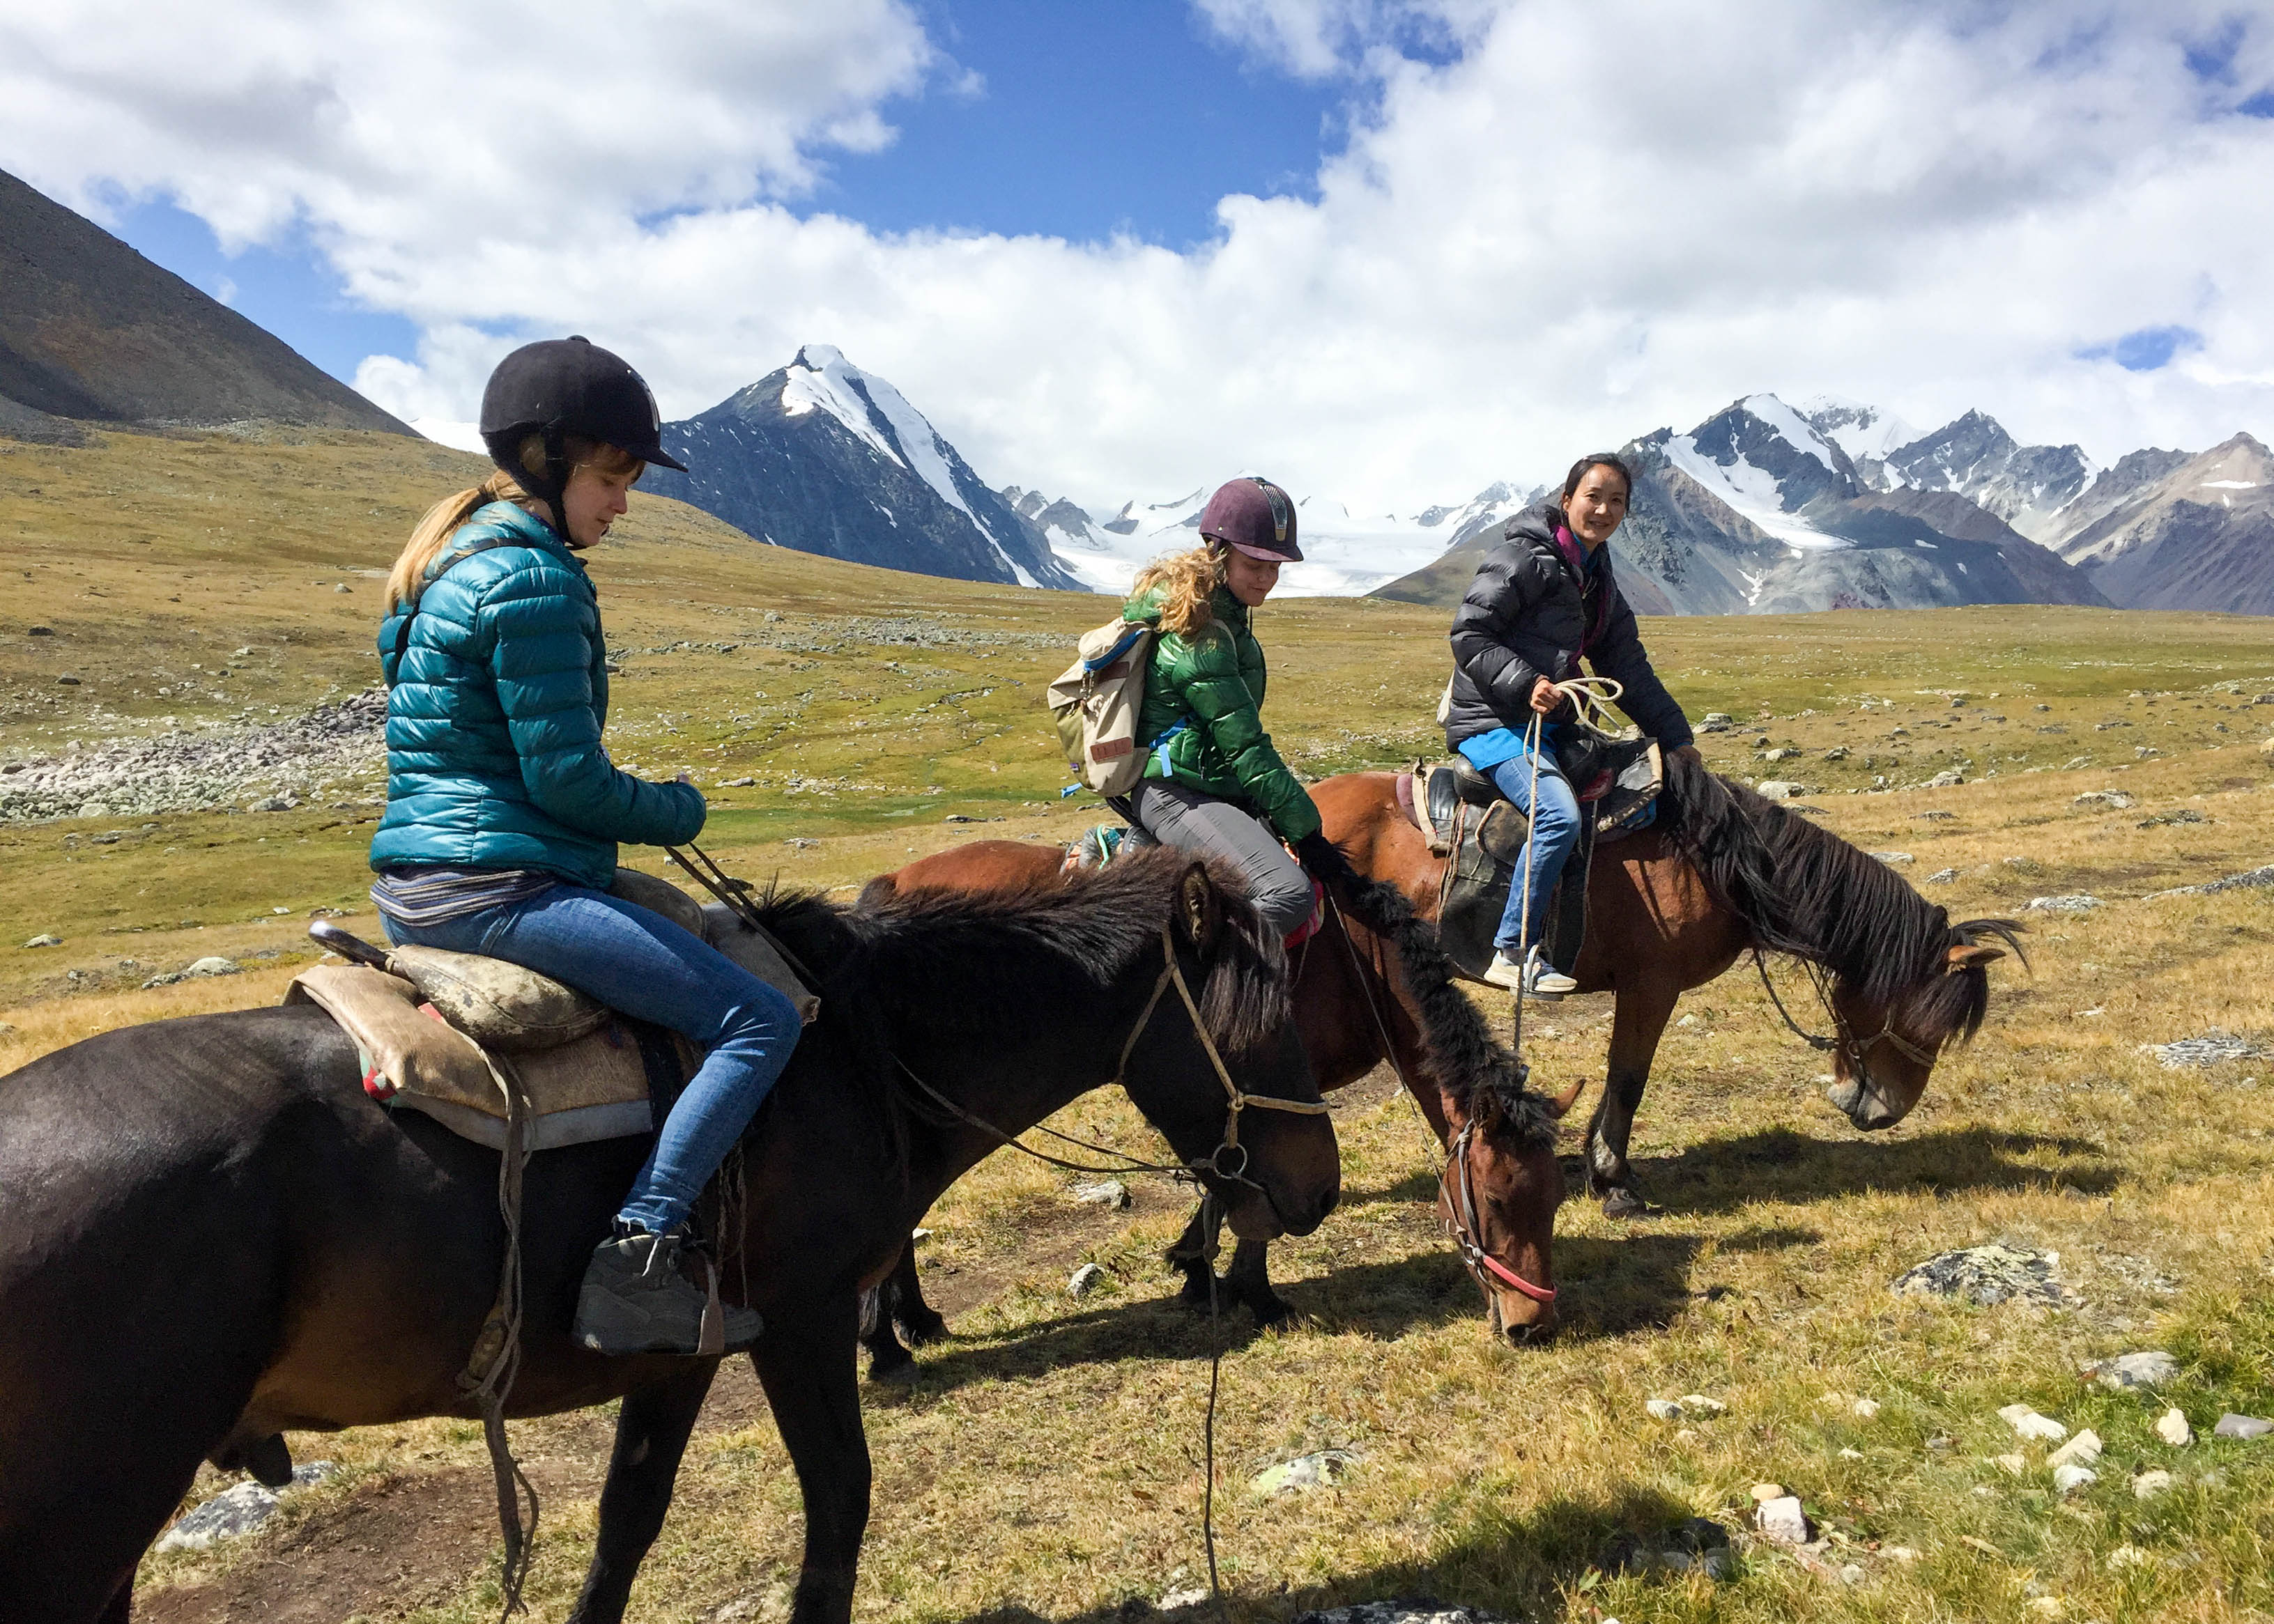 Our local female Mongolia guide on horseback leading two tourists.